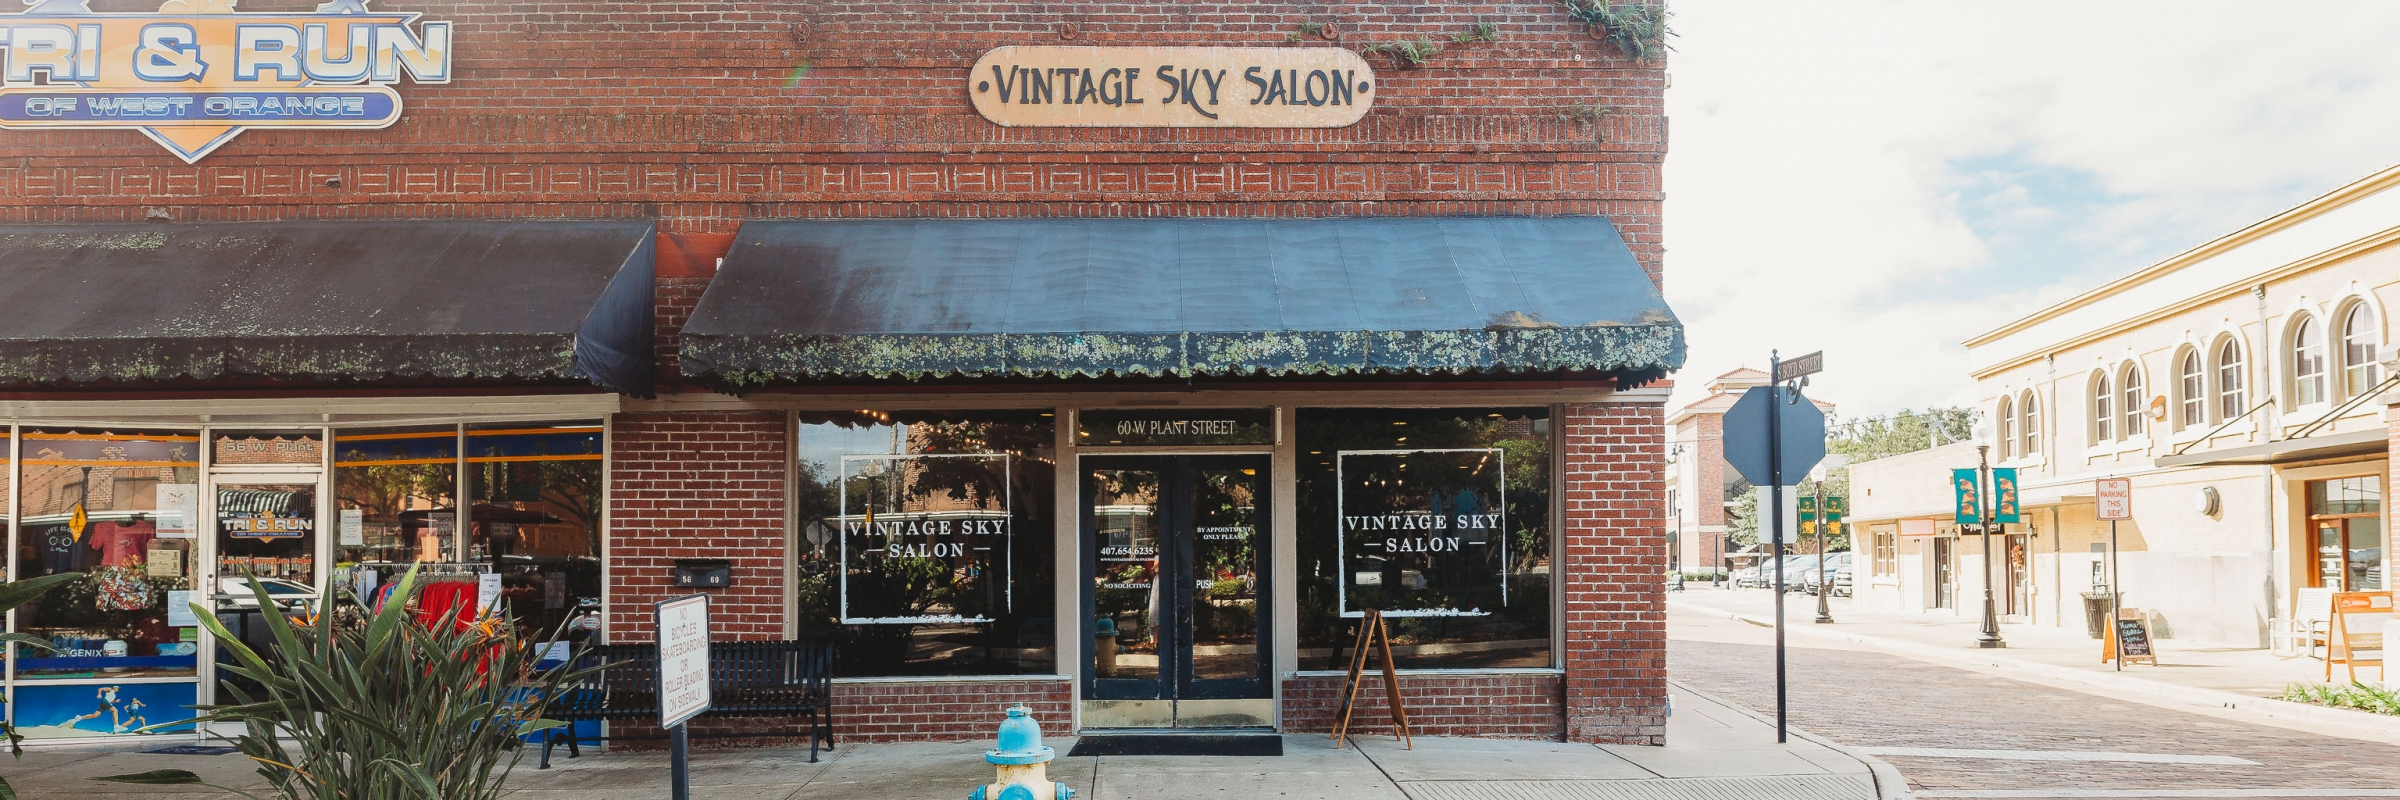 Vintage Sky Salon – Downtown Winter Garden Florida (1 of 1)